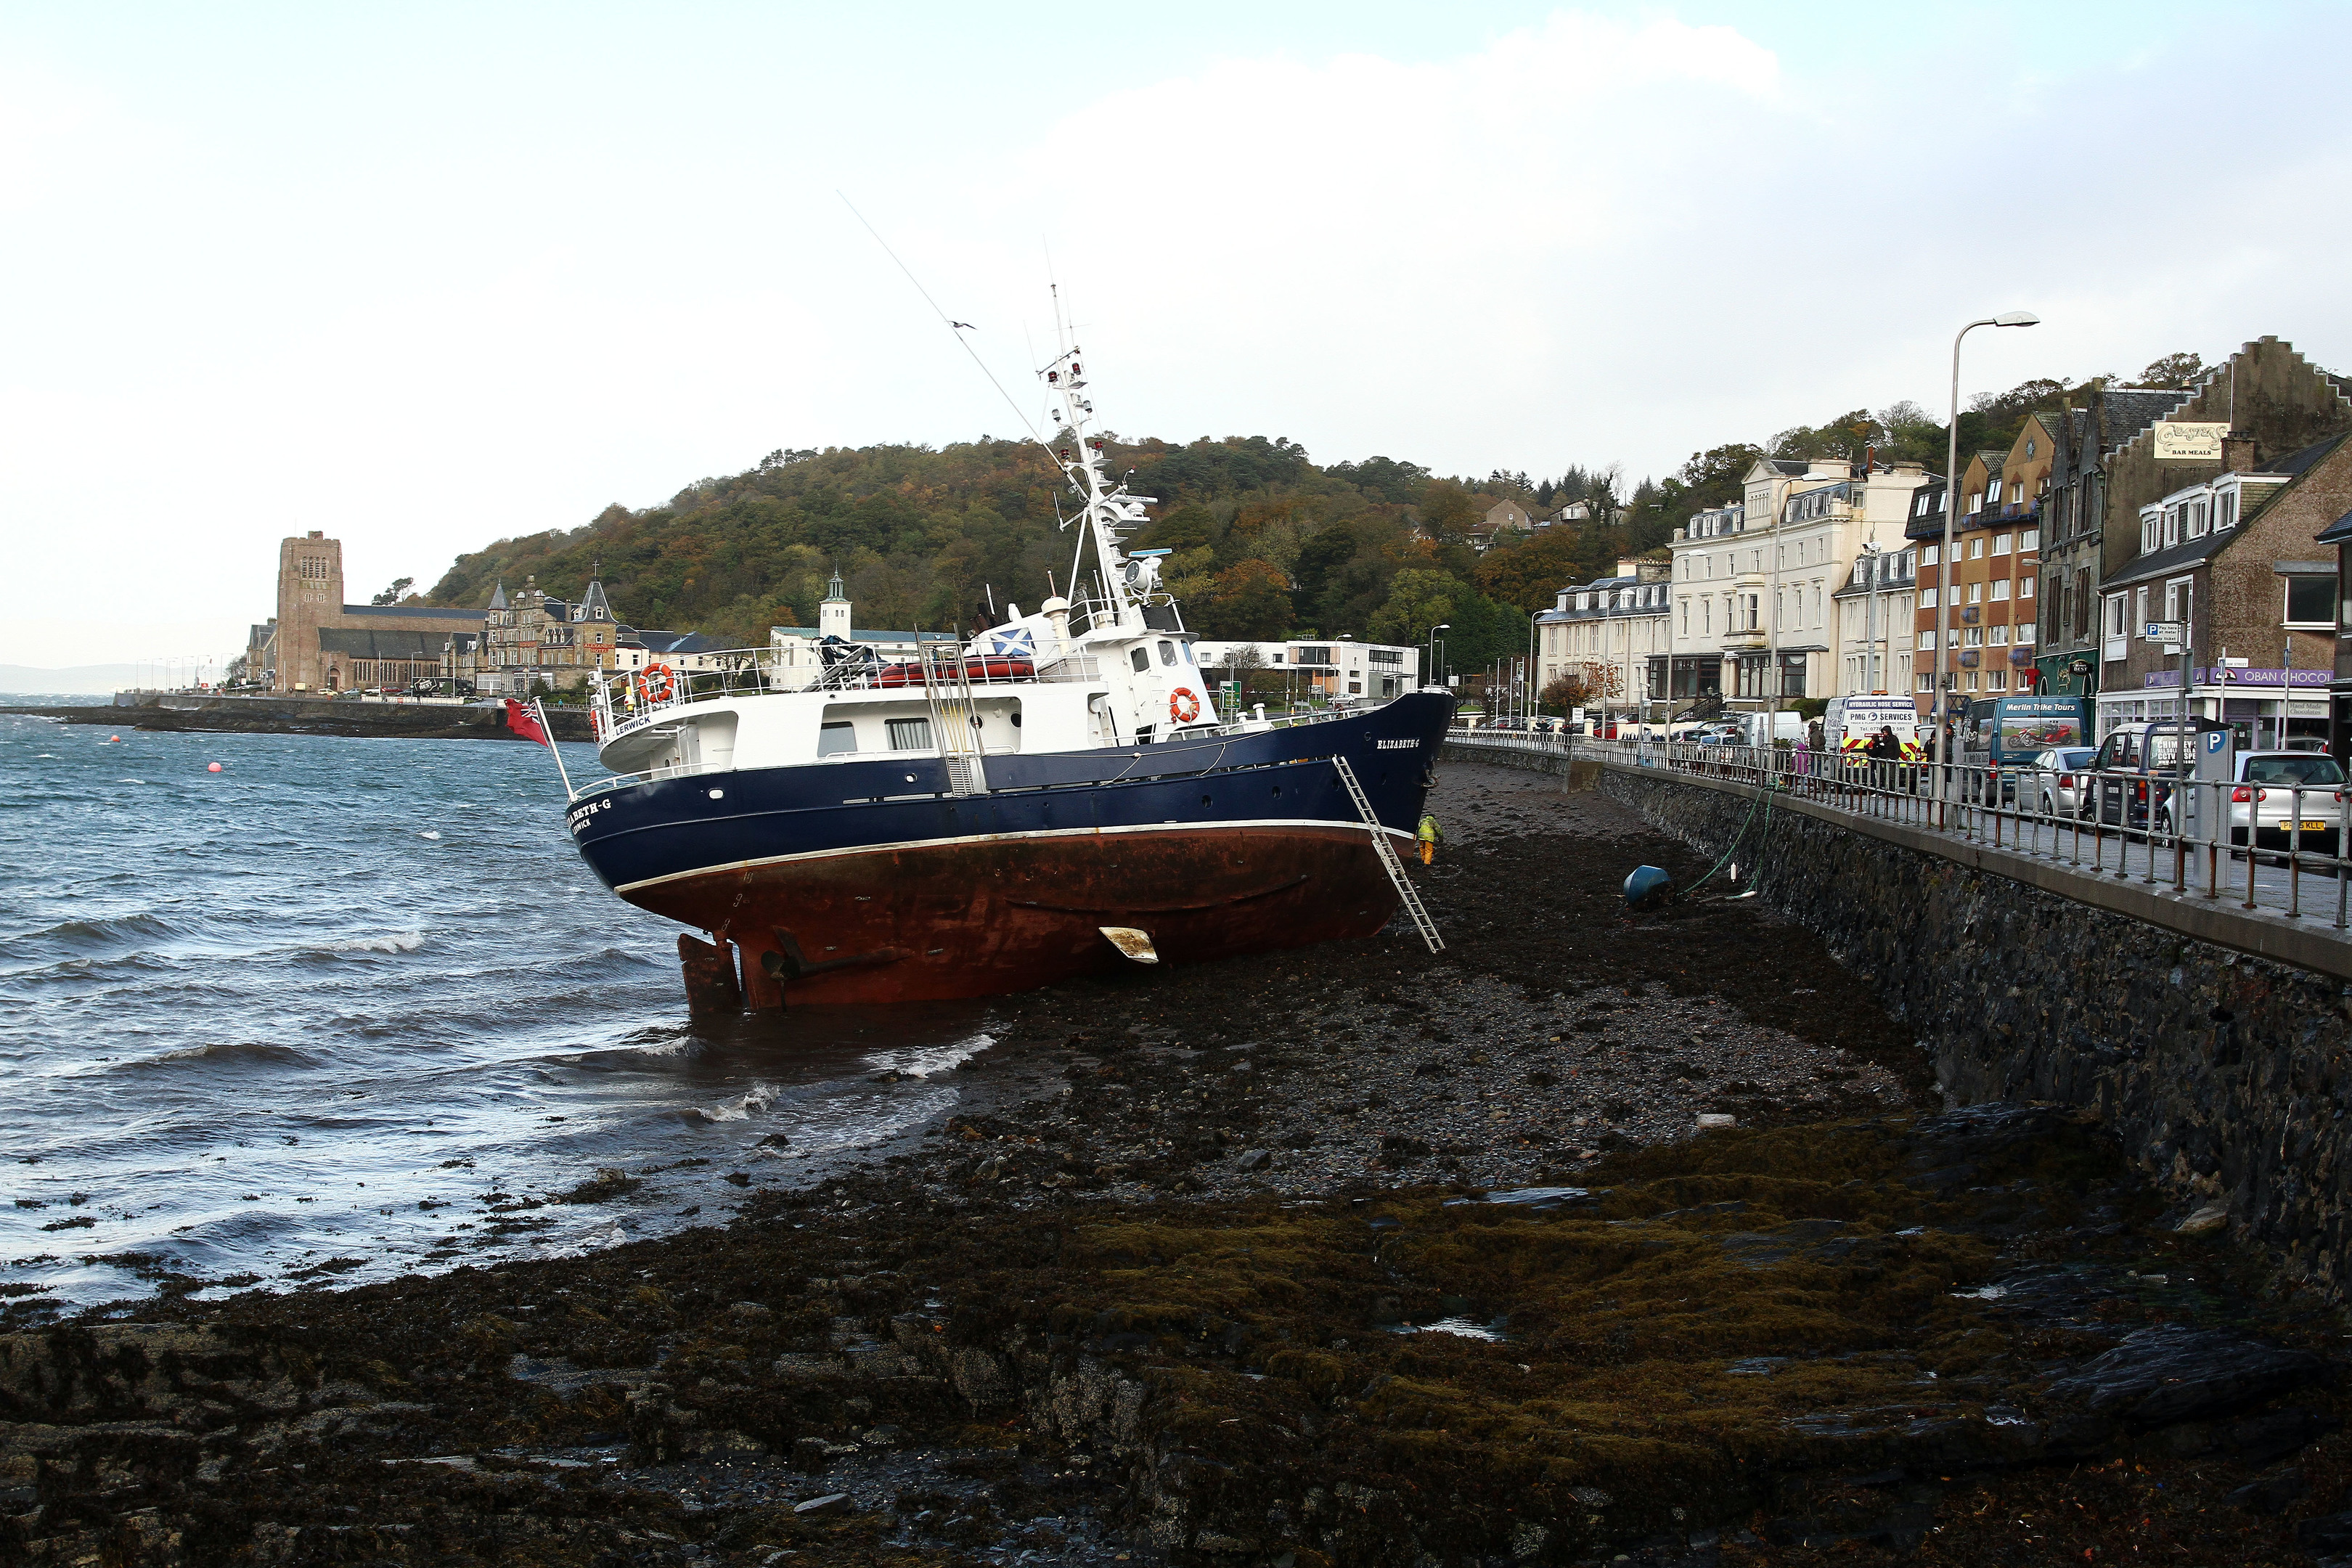 A boat tossed on to the shore by high winds at Oban. Picture by Kevin McGlynn